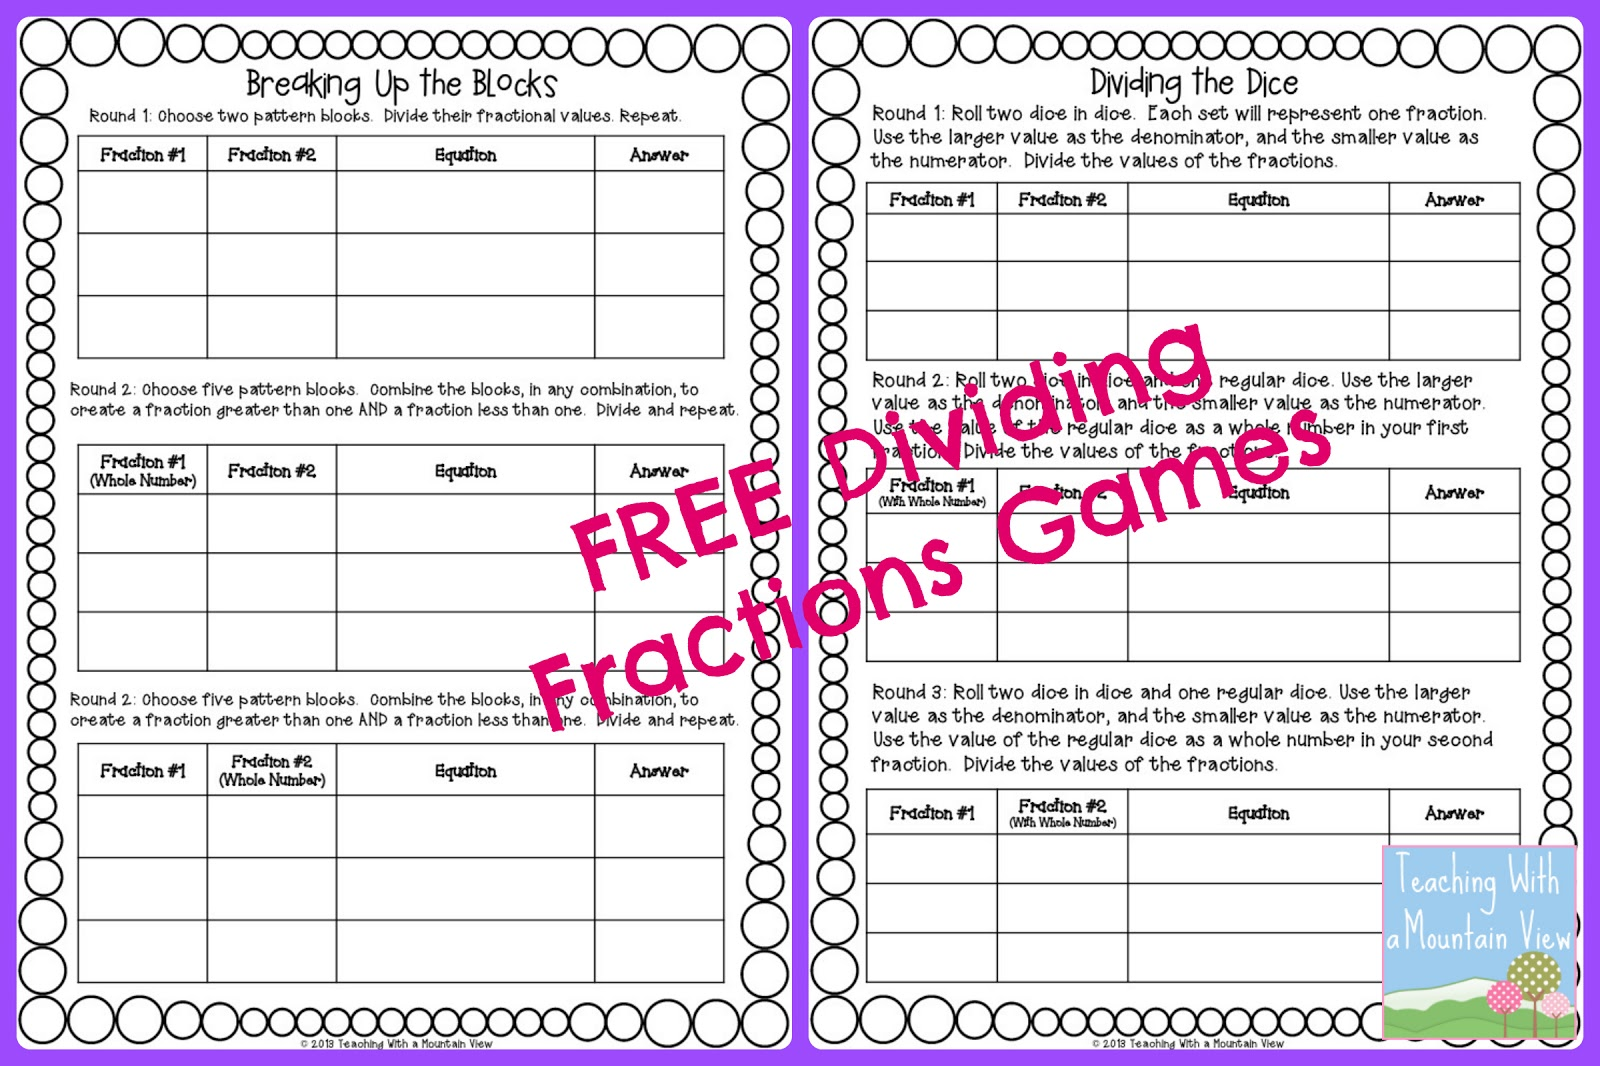 Worksheet 5th Grade Dividing Fractions teaching with a mountain view dividing fractions anchor chart there are two versions of the game i had half my group working on one while they other worked oth